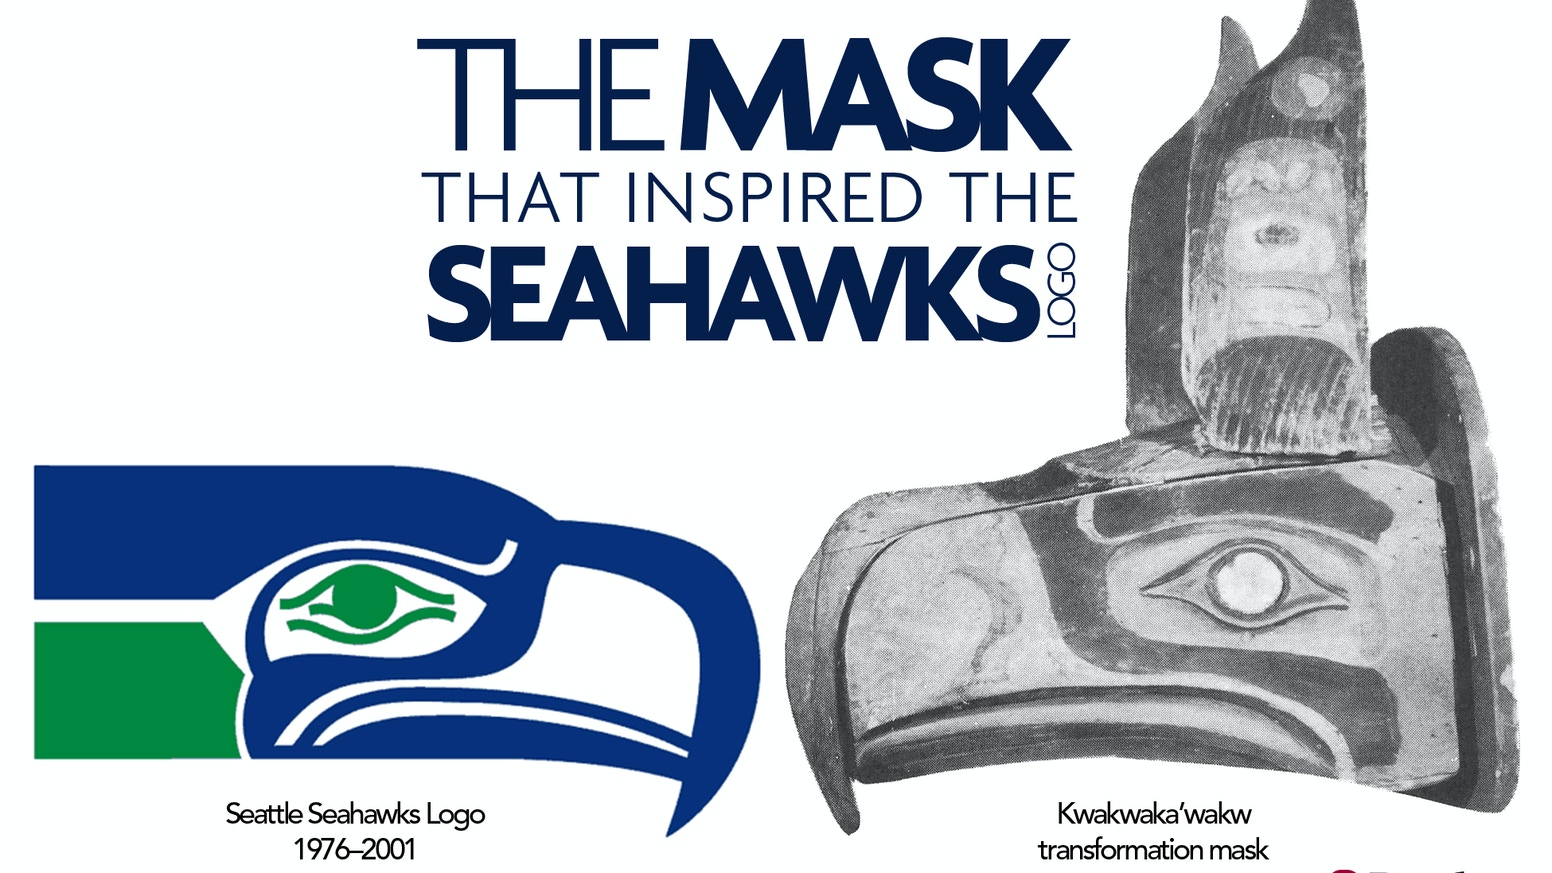 With your support, we brought the mask that inspired the Seahawks logo to Seattle for everyone to see!